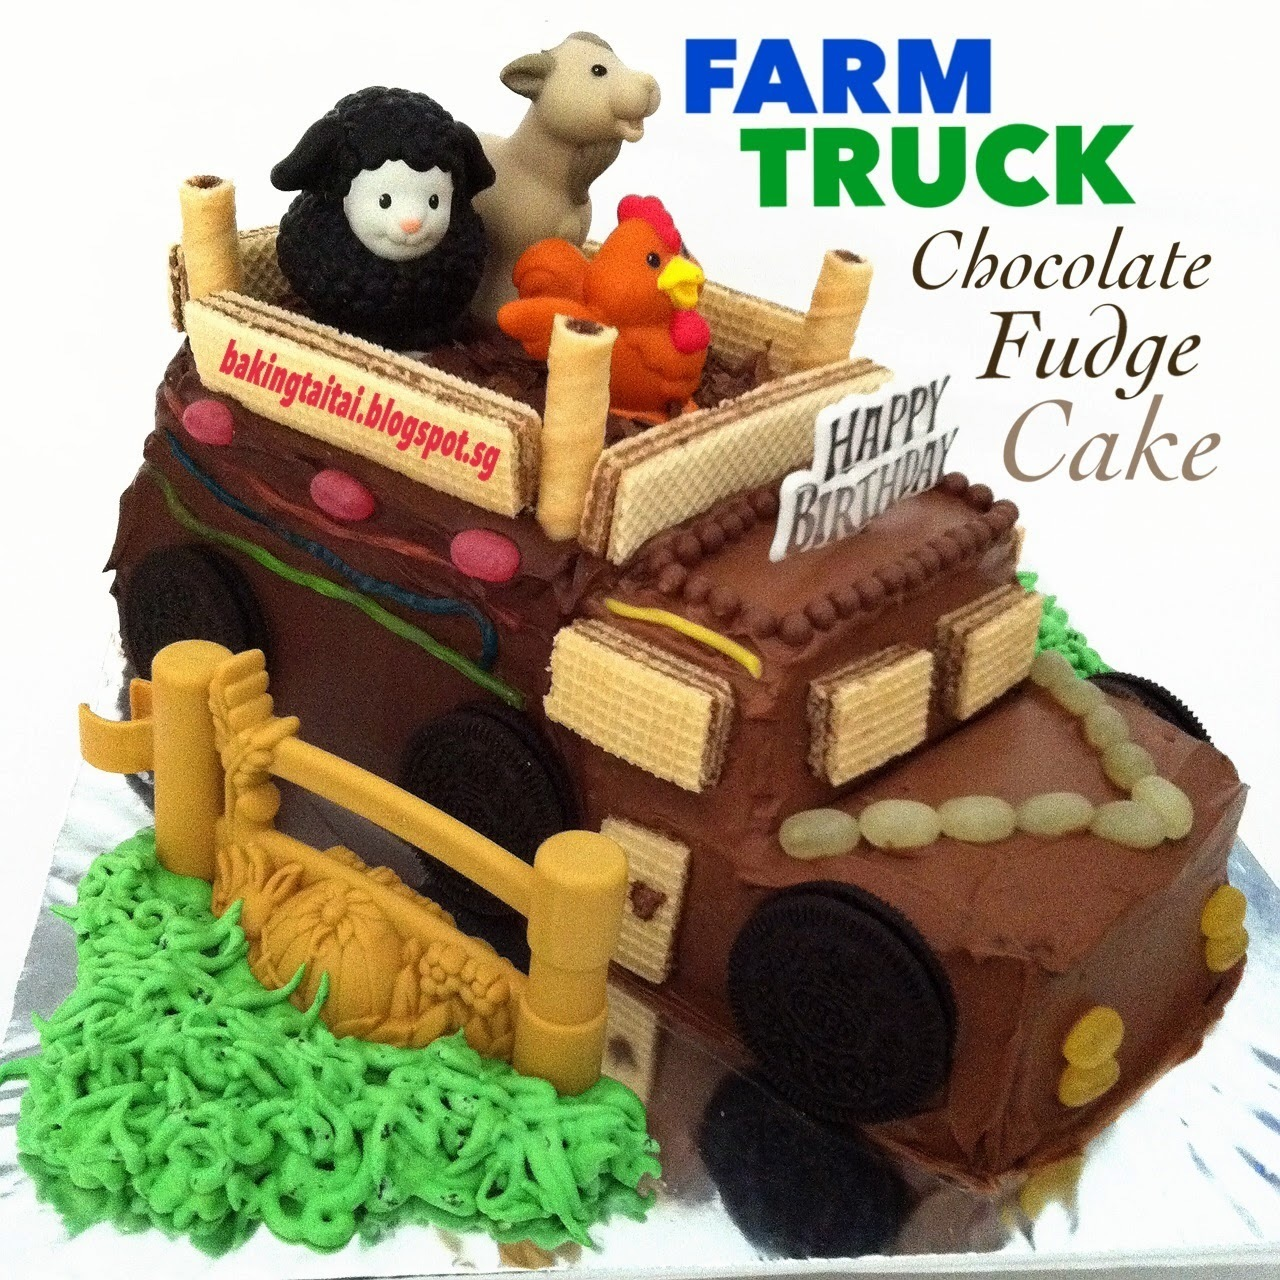 Farm Truck Chocolate Fudge Cake